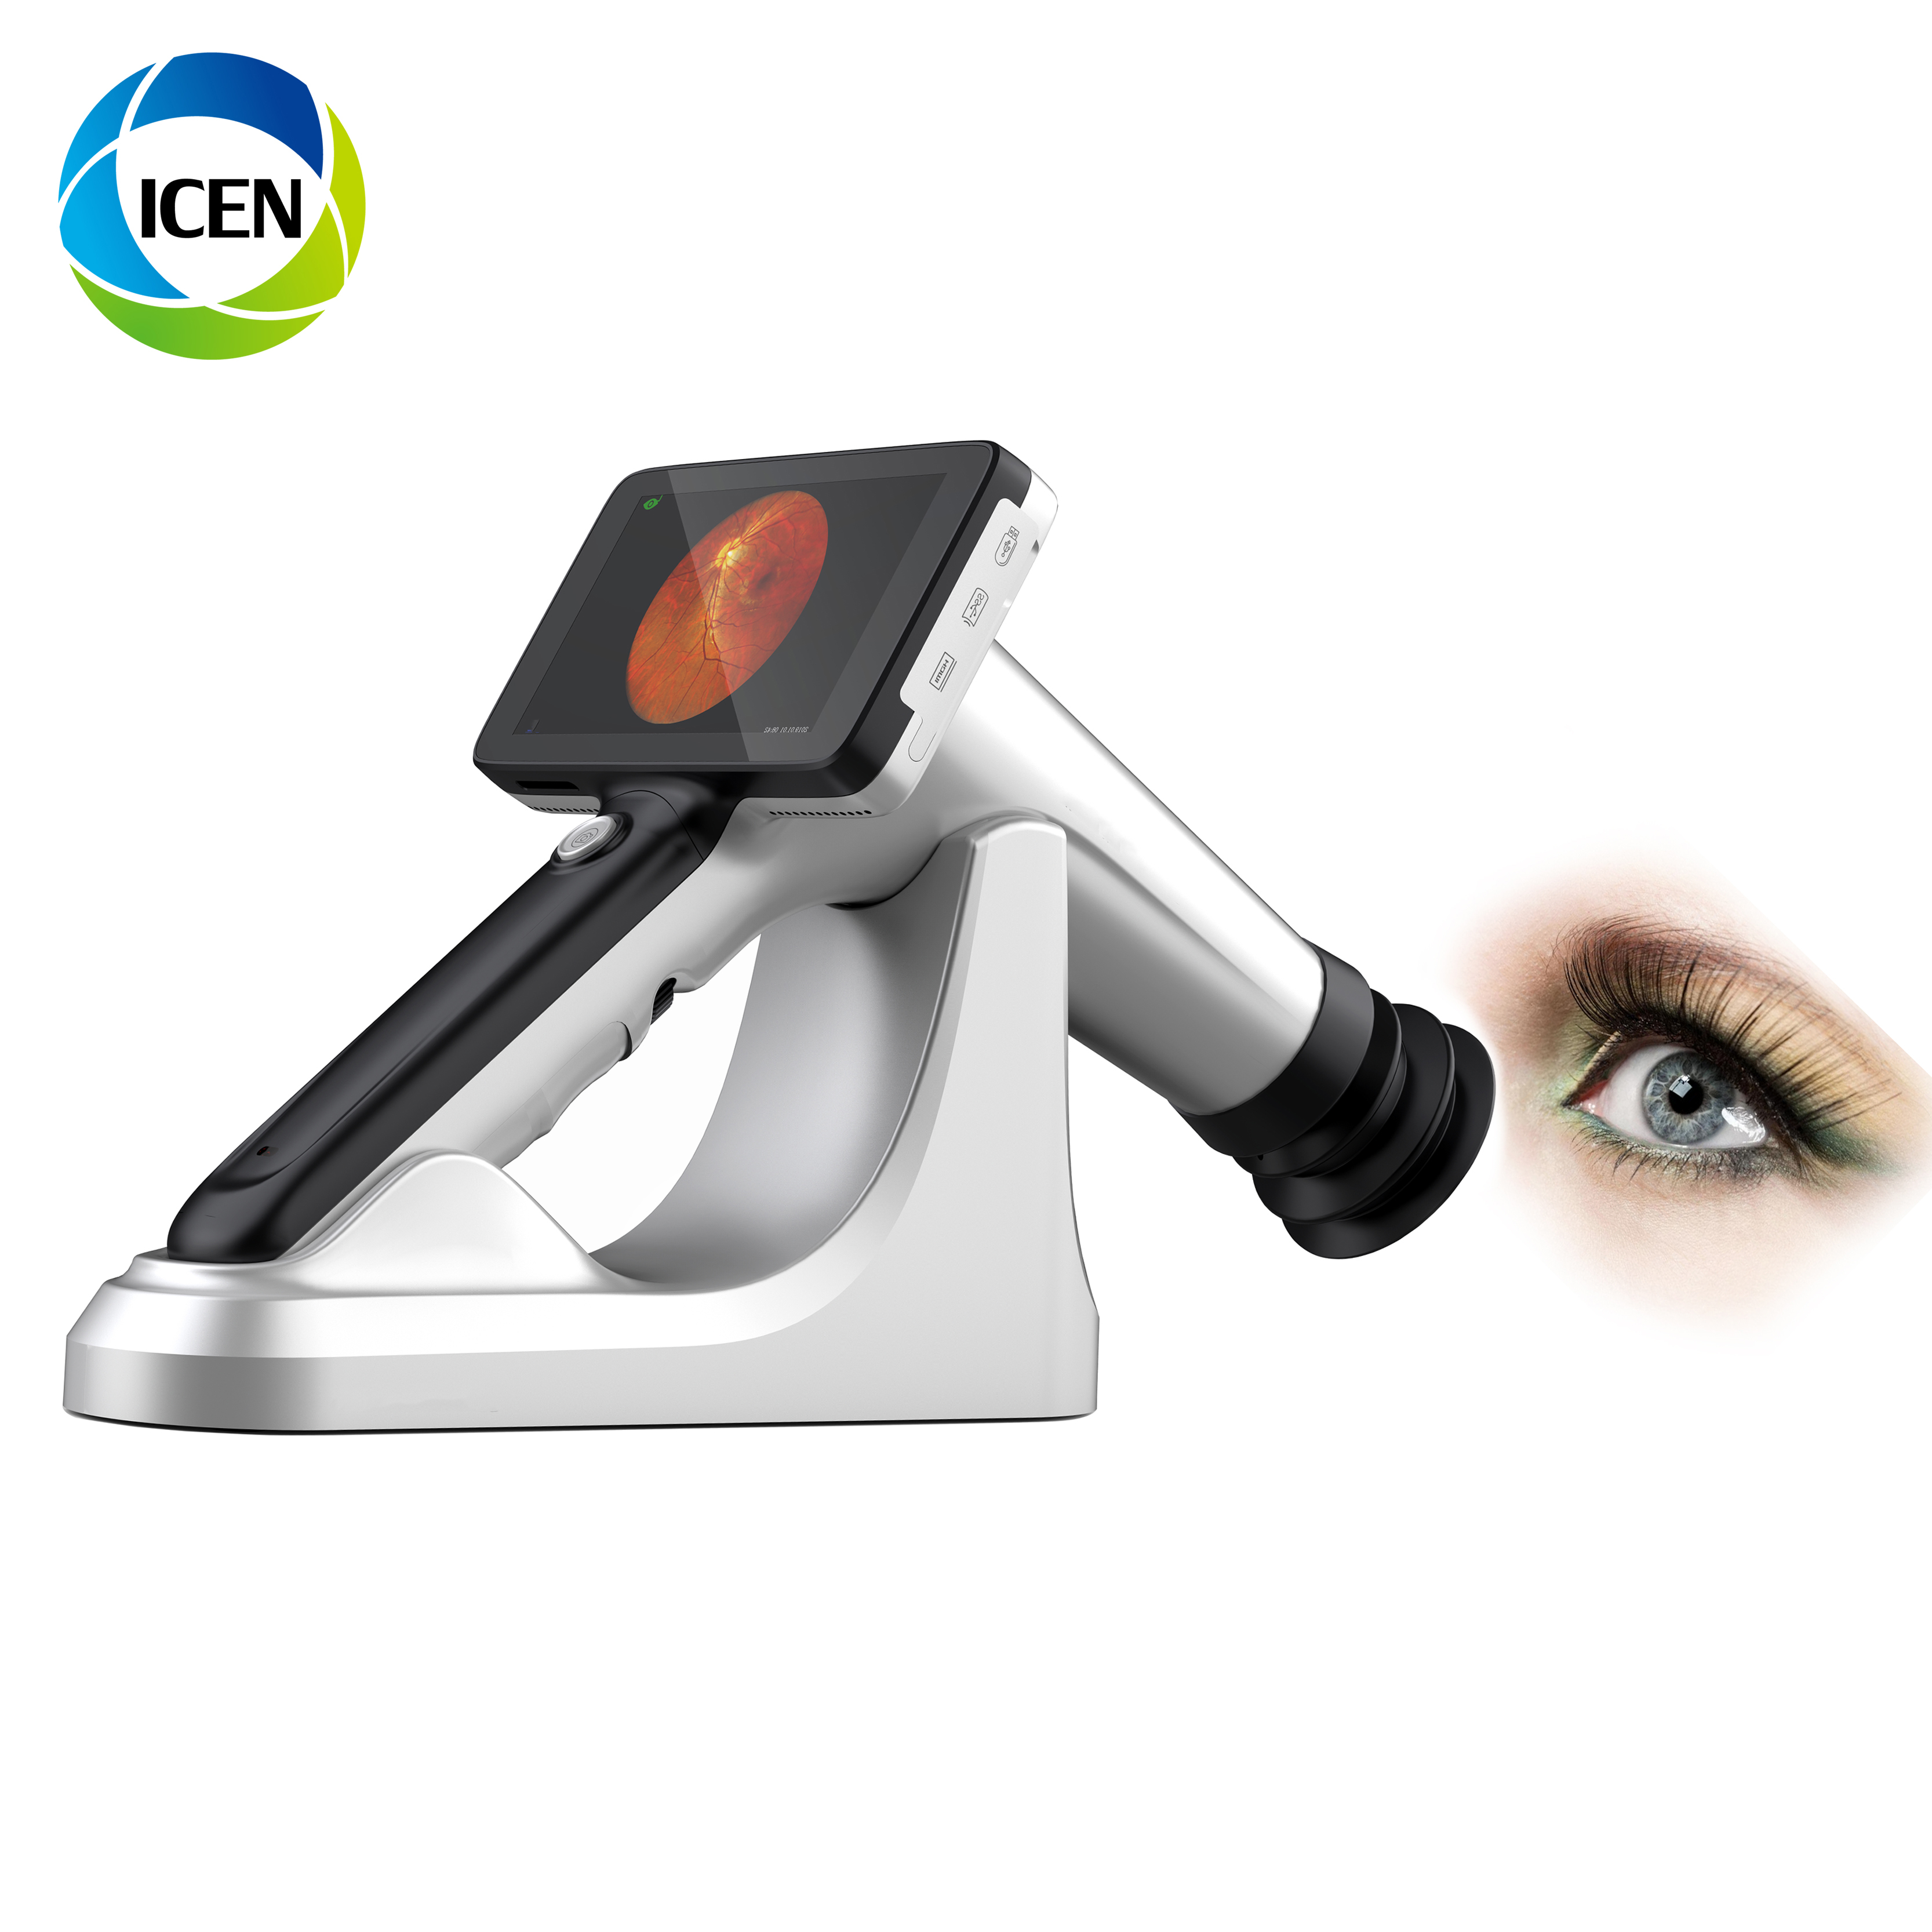 IN-V042-1 handheld Digital Eye Exam Ophthalmic Fundus Camera